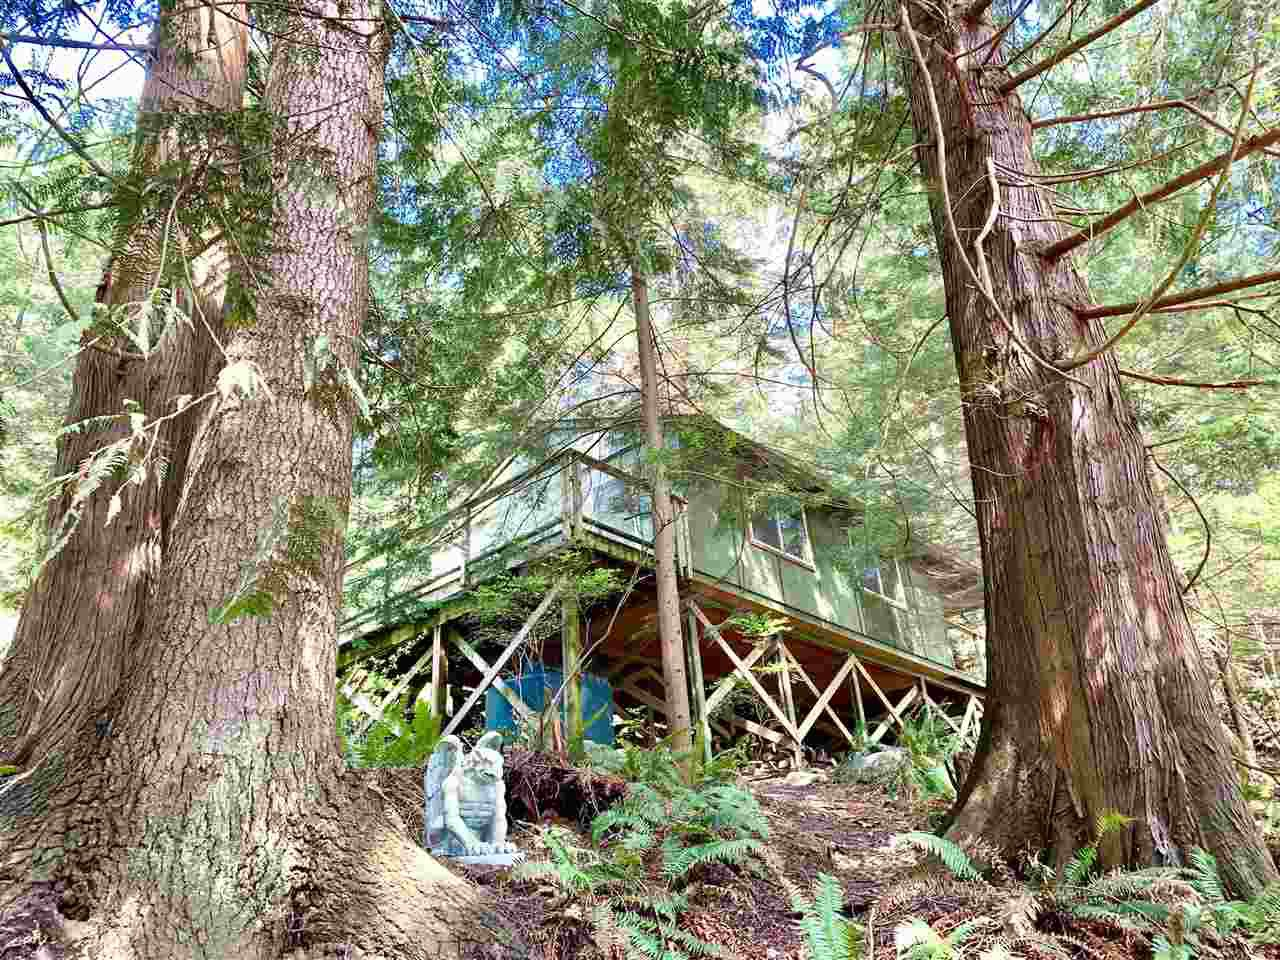 Main Photo: 303 GORDON Road: Keats Island House for sale (Sunshine Coast)  : MLS®# R2359616